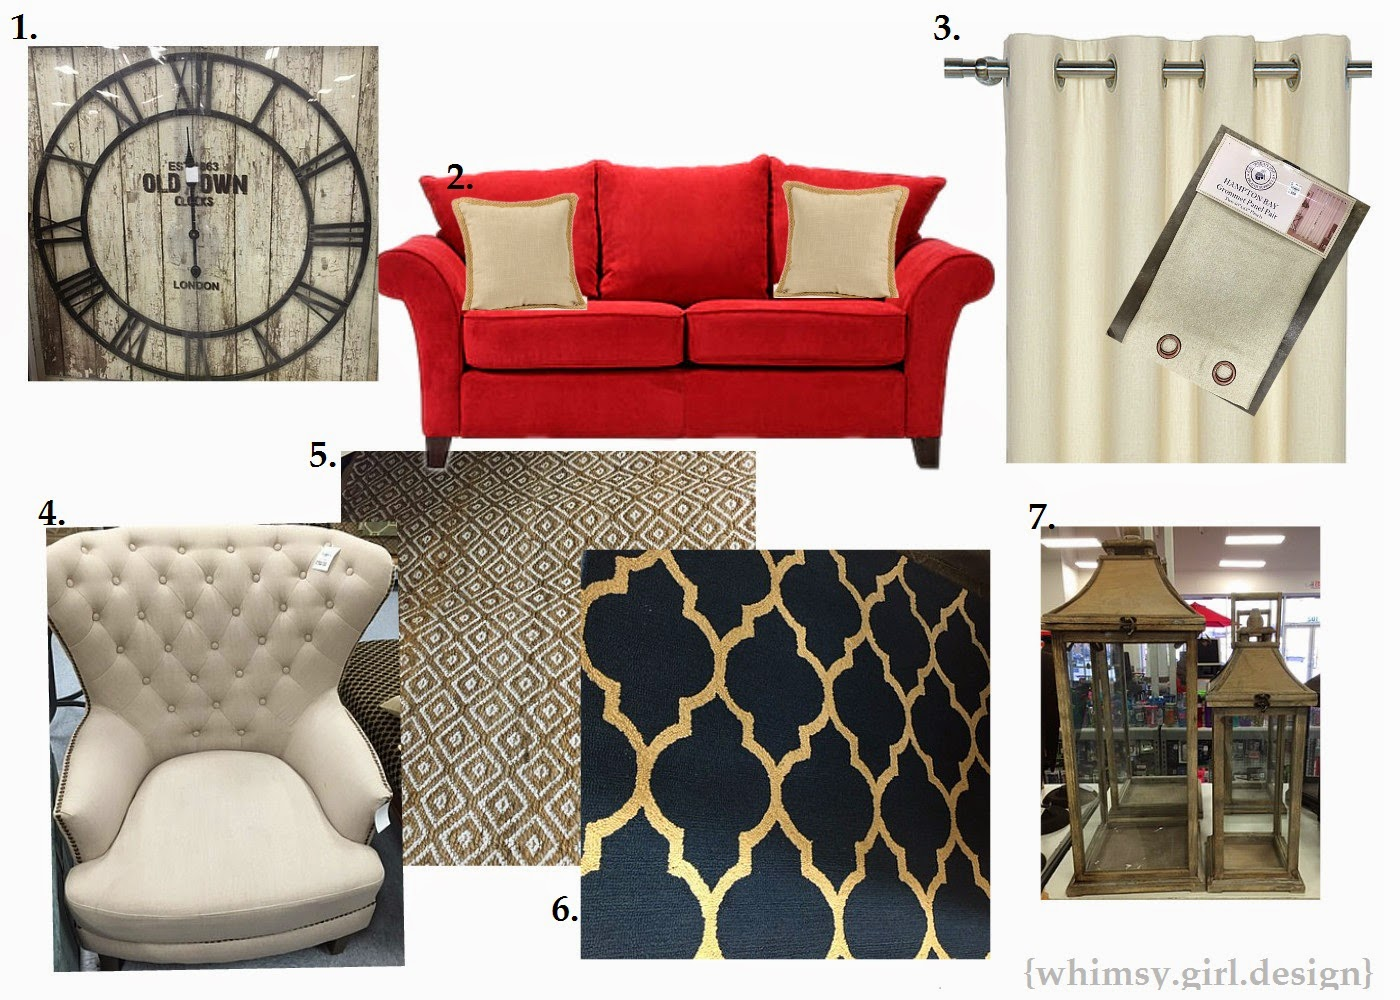 I Am Obsessed With That Chair...from The Tufted Back To The Nailhead Trim,  It Is Fabulous! And The Rugs...I Have A Rug From Tuesday Morning In ...